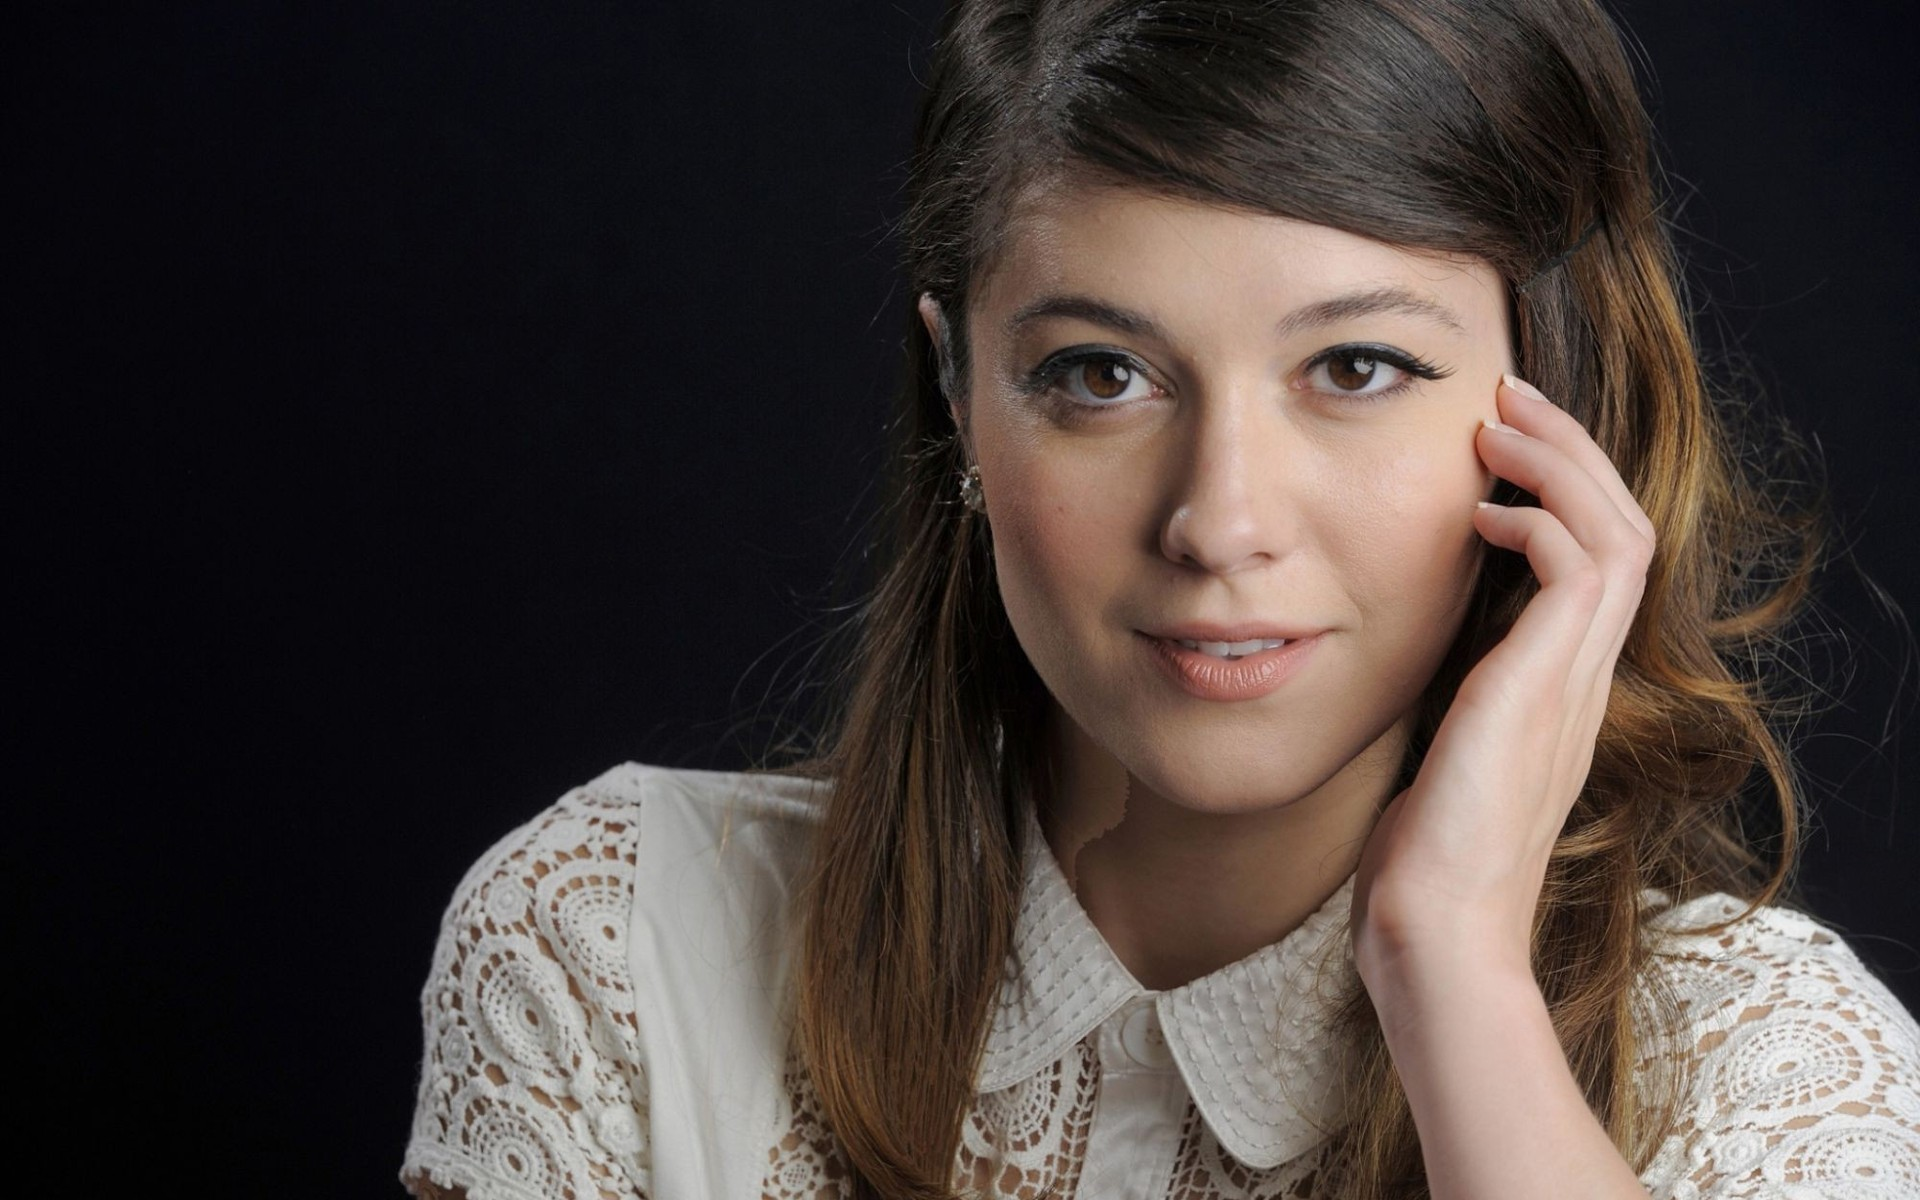 download beautiful mary elizabeth winstead 40645 1920x1200 px high